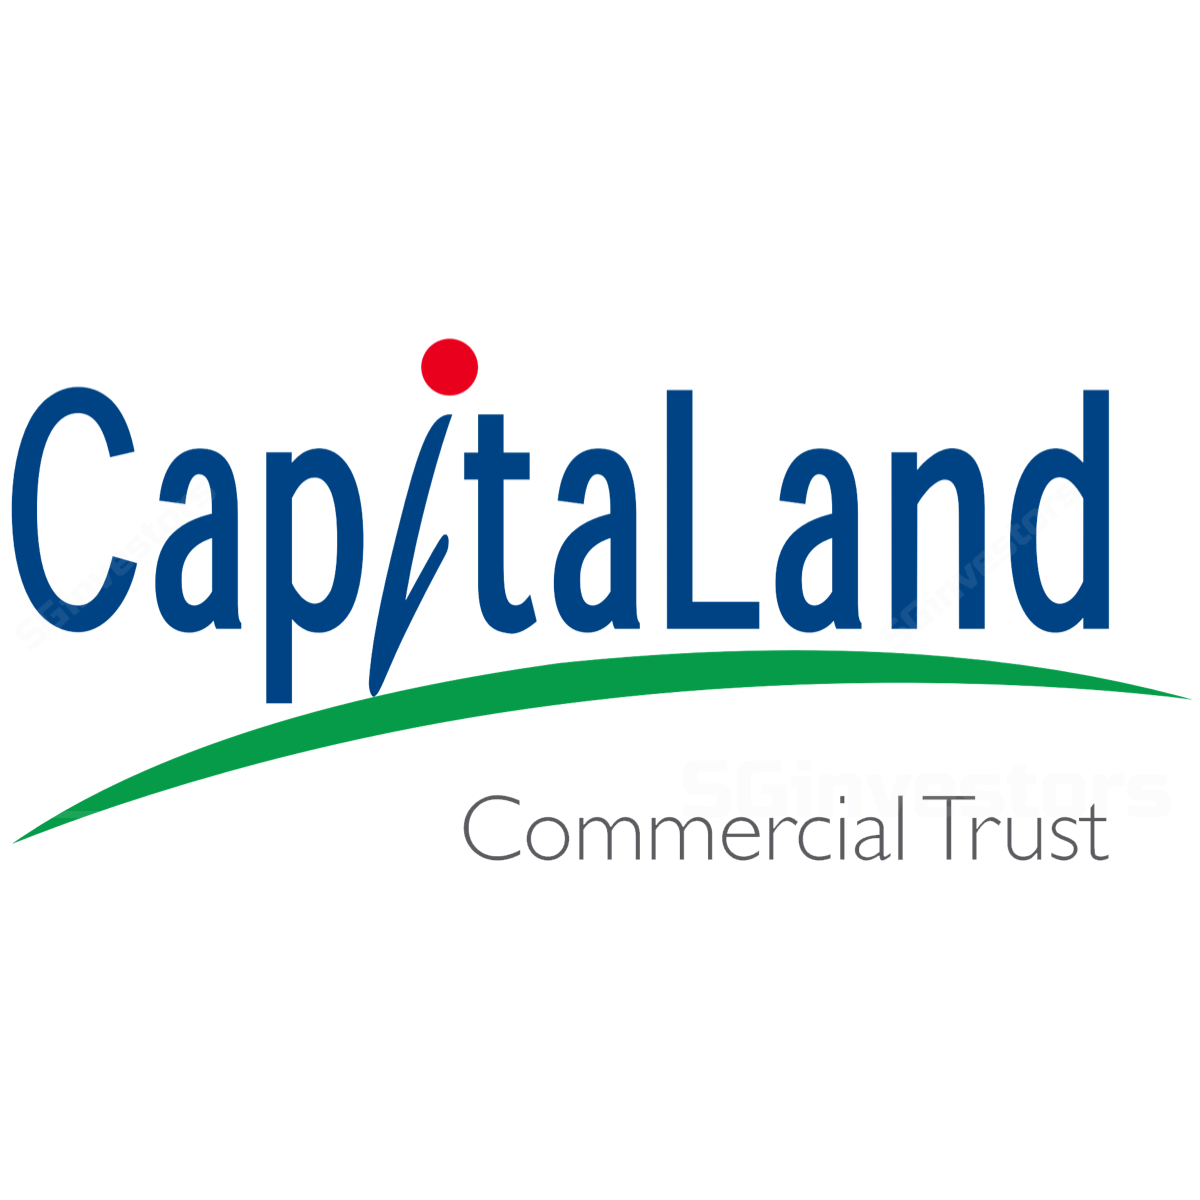 CapitaLand Commercial Trust (CCT SP) - Maybank Kim Eng 2017-01-18: Stable performance